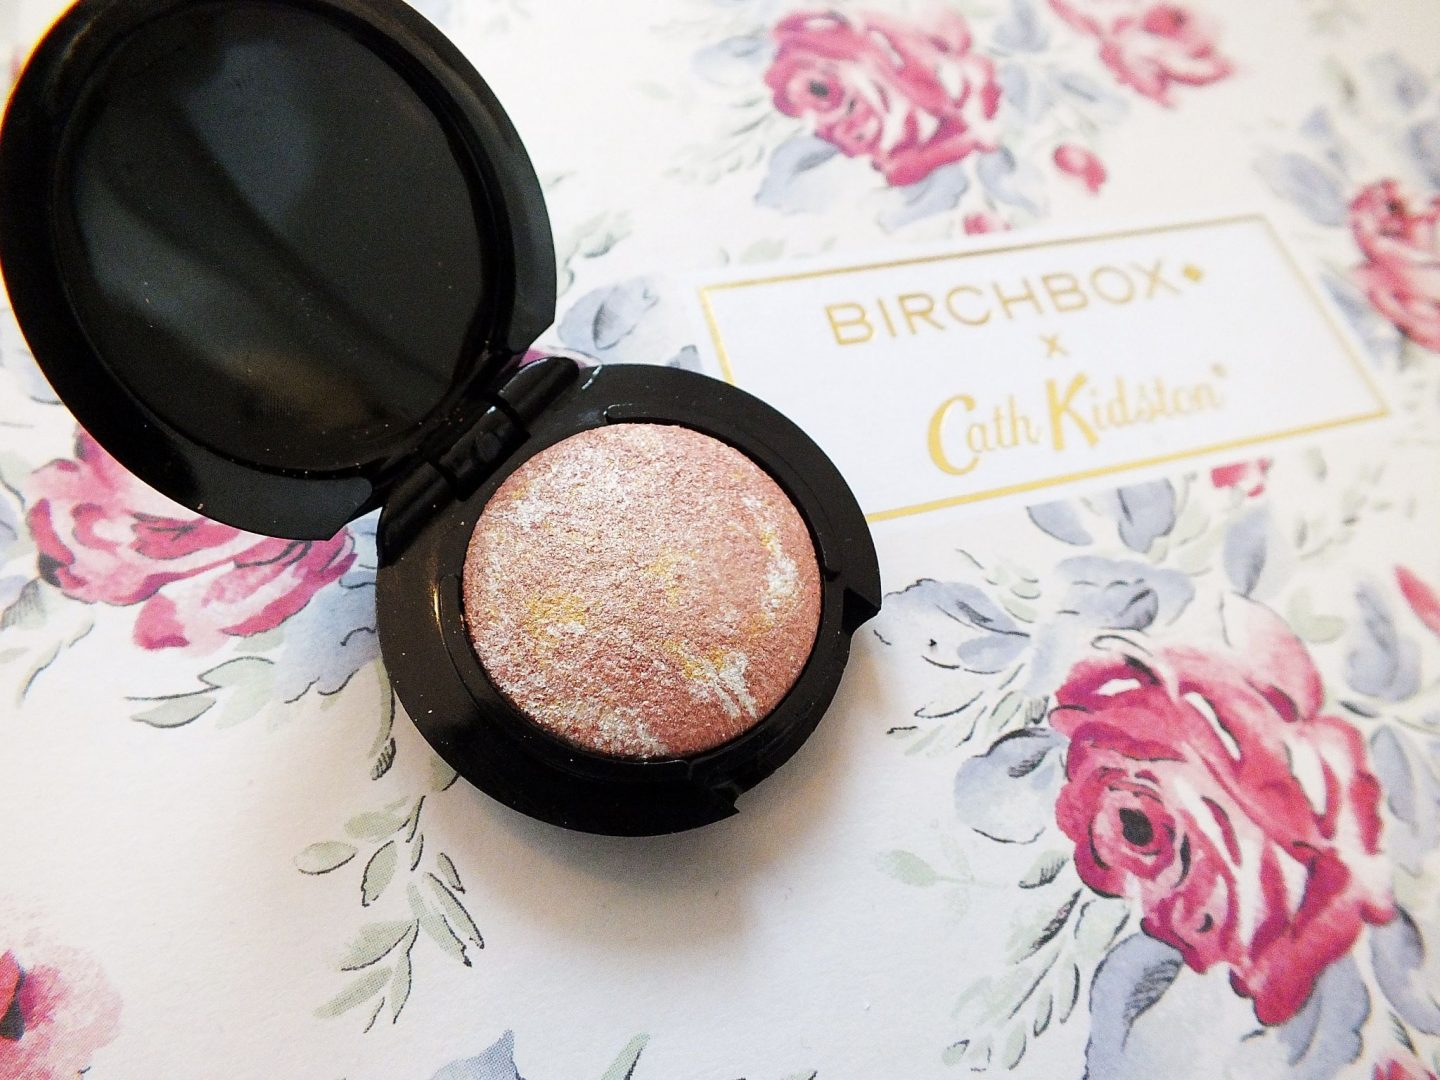 April Birchbox ModelCo Highlighter Moonshine close up macro